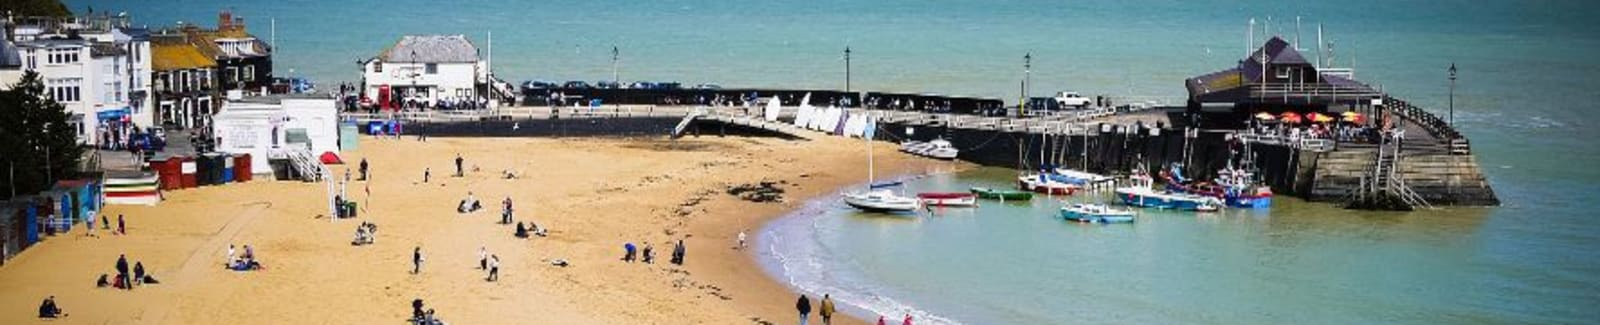 Seaside visits for over 55s